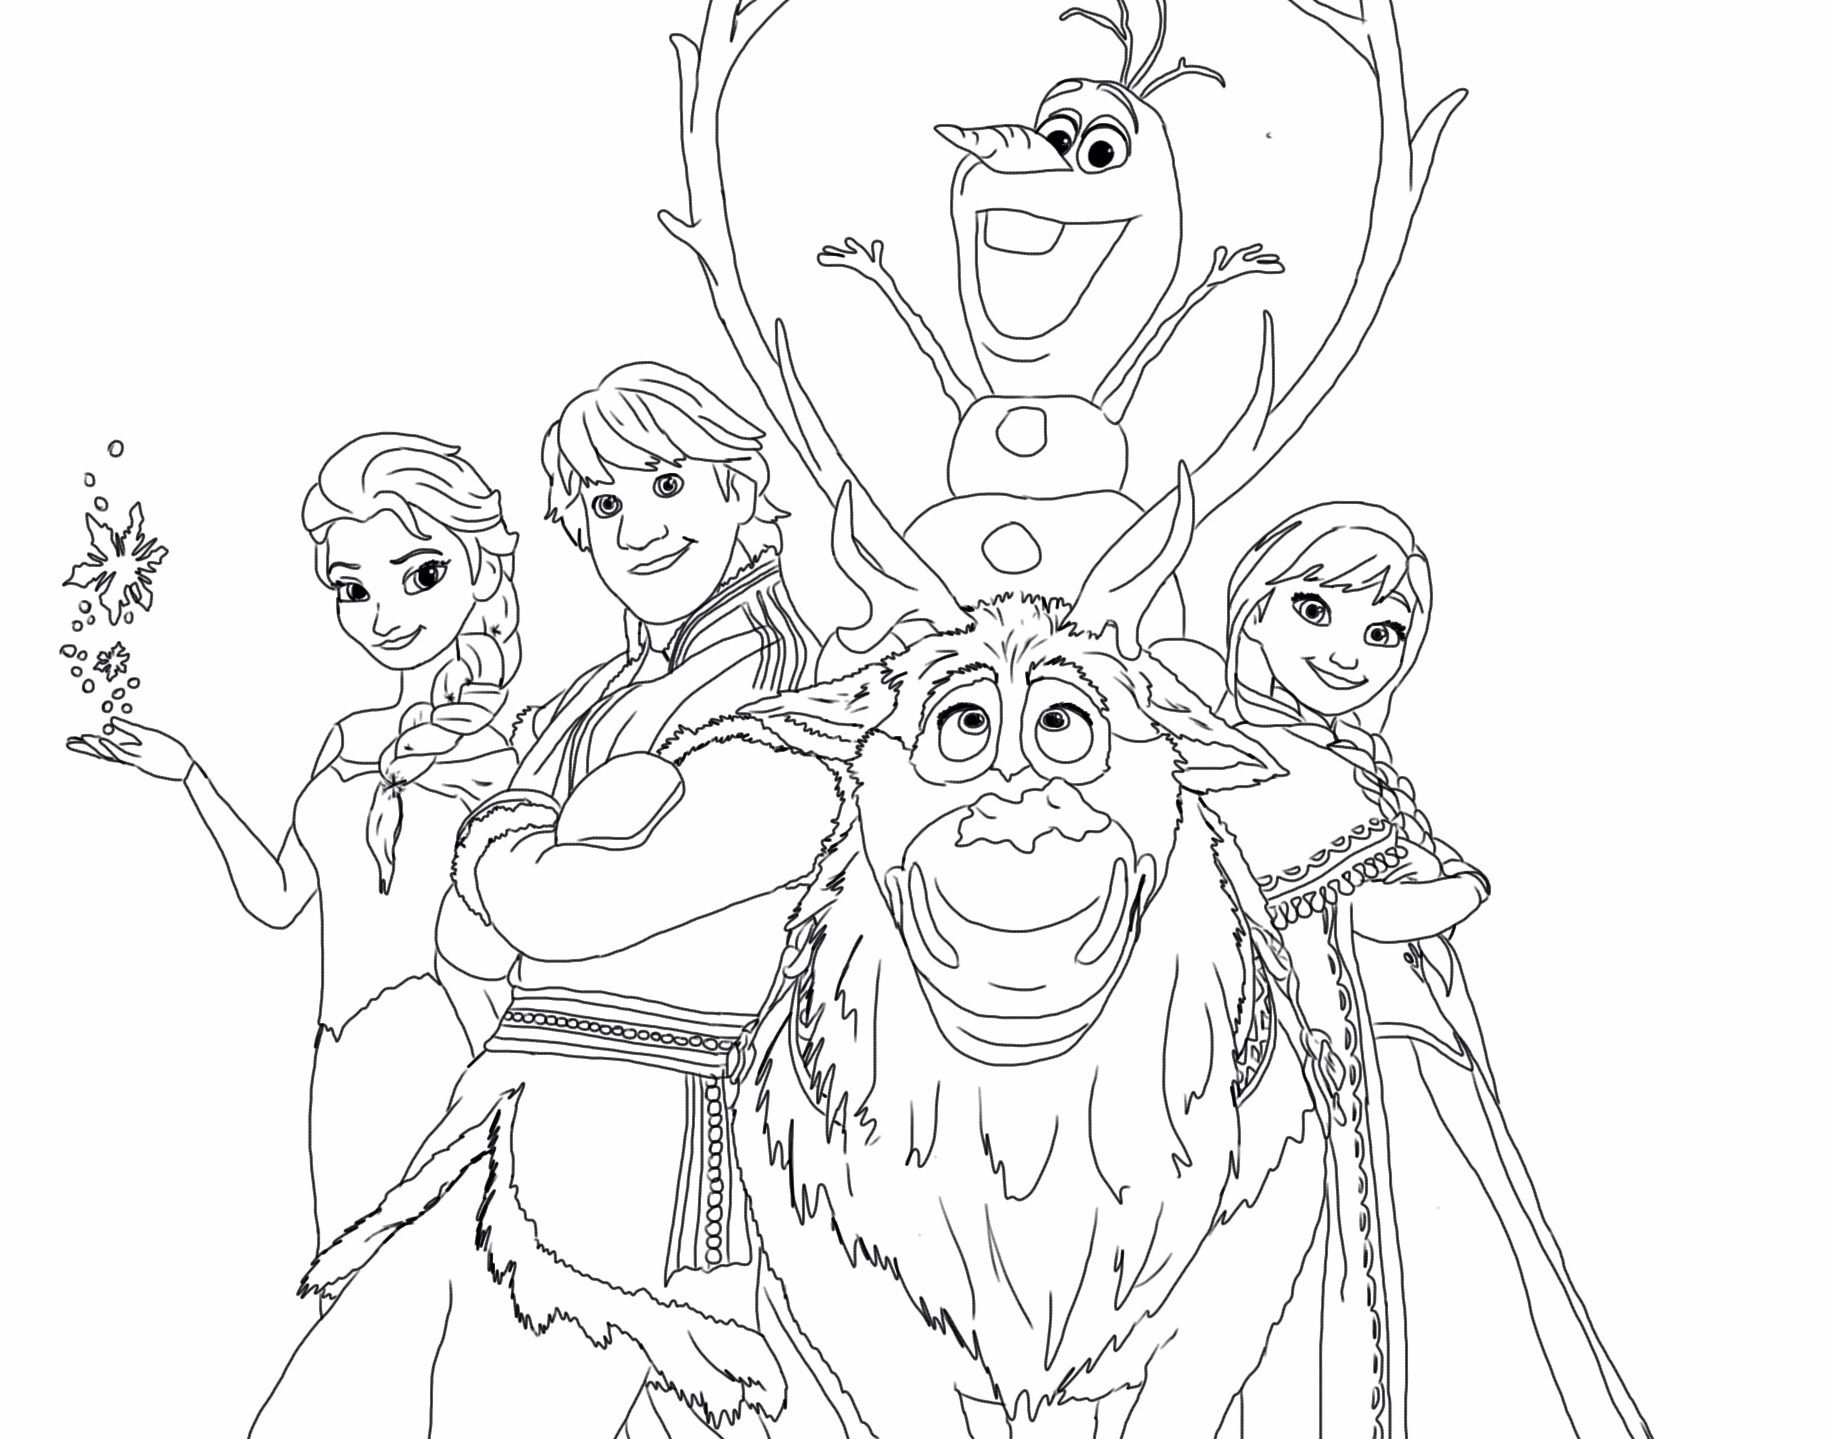 coloring page of frozen characters - Character Coloring Pages Kids